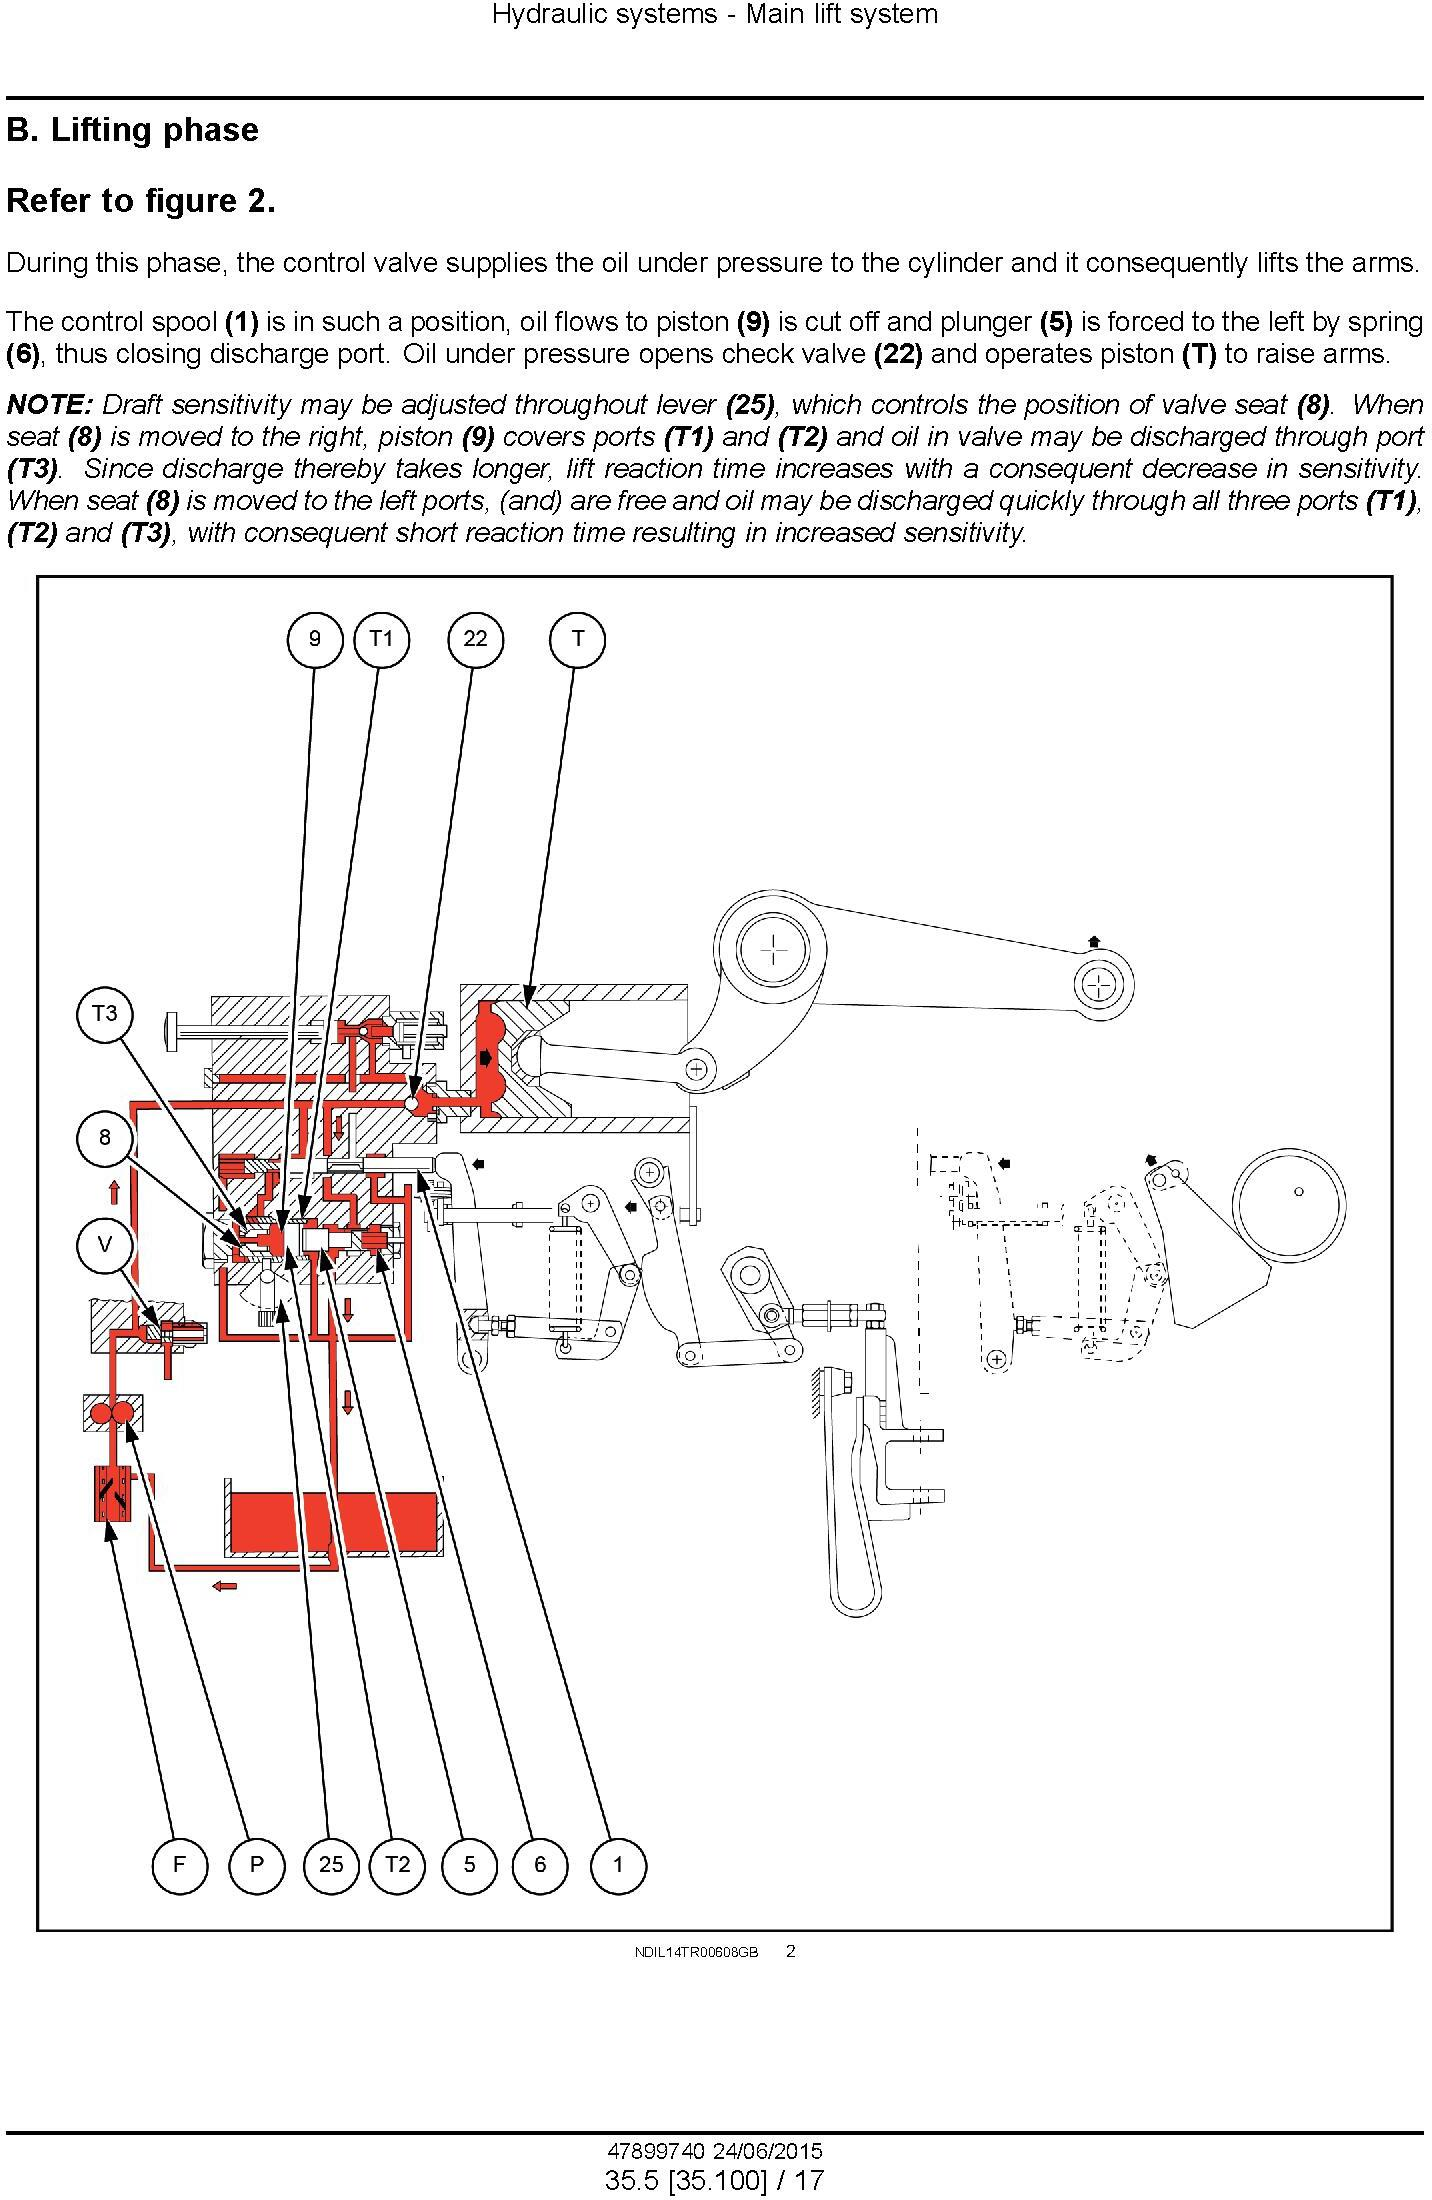 New Holland 5500, 6500, 7500 Tier 3 Tractor Service Manual - 2